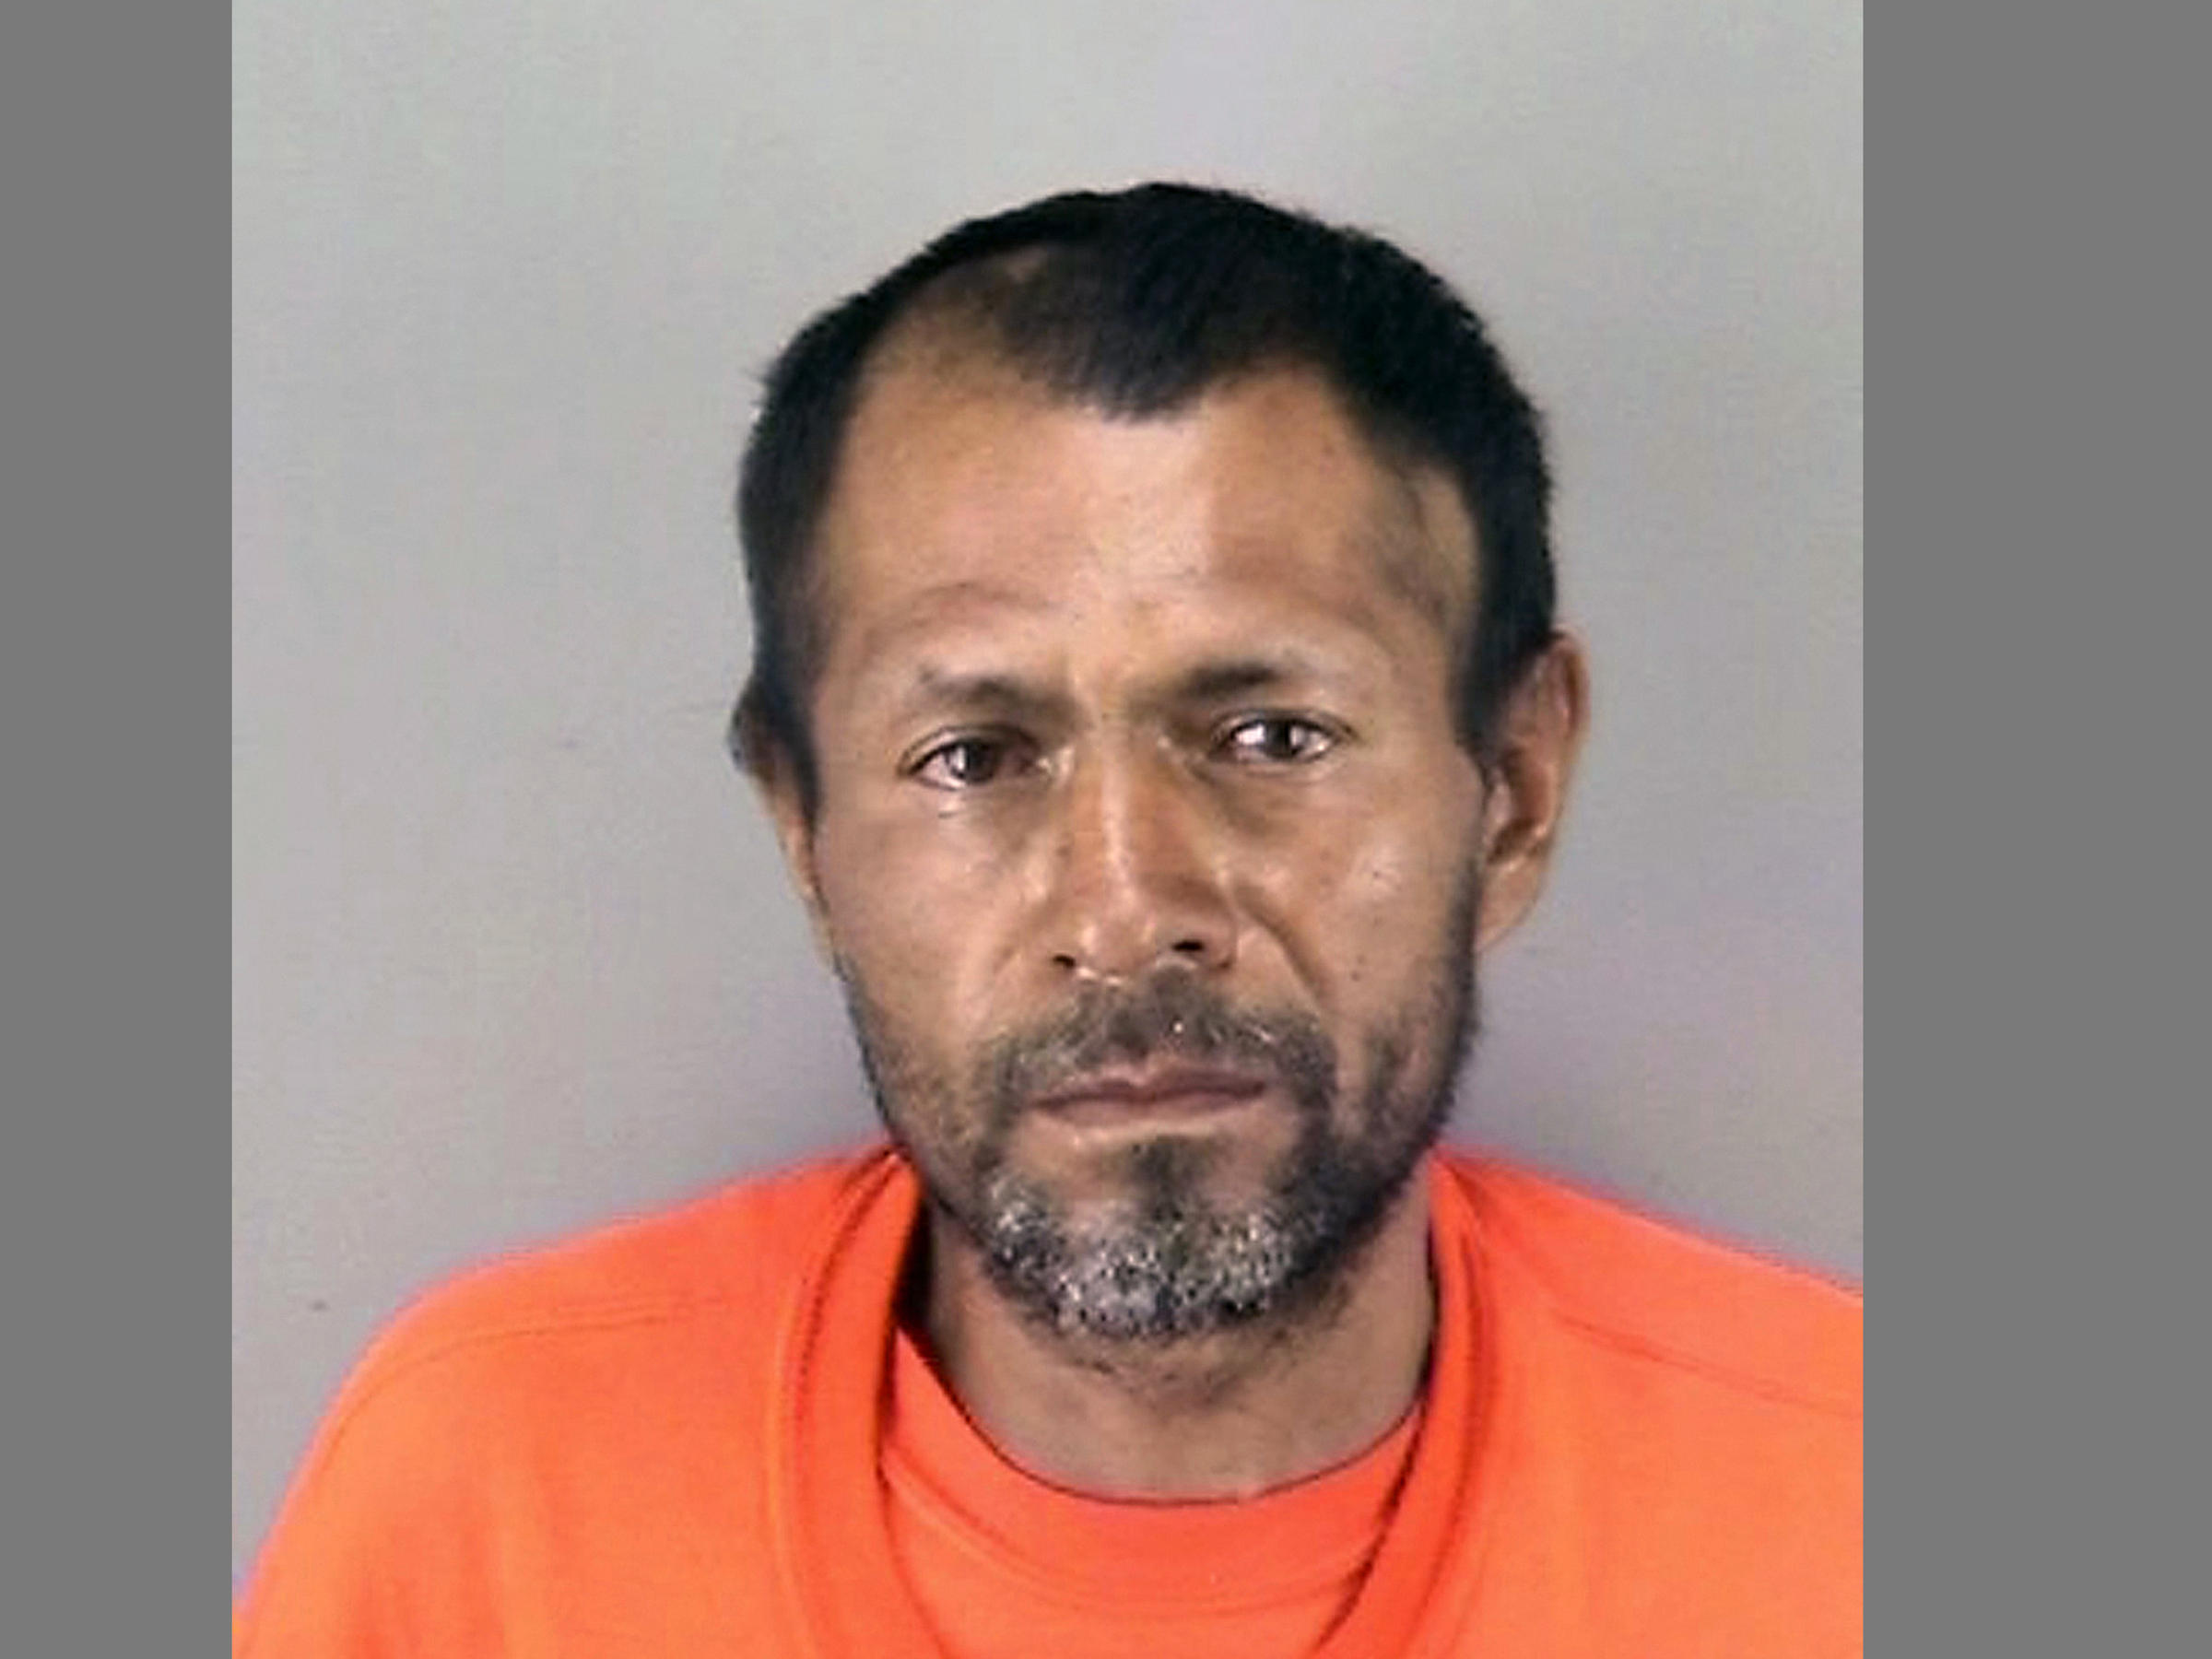 Conviction overturned for undocumented immigrant charged in death of Kate Steinle